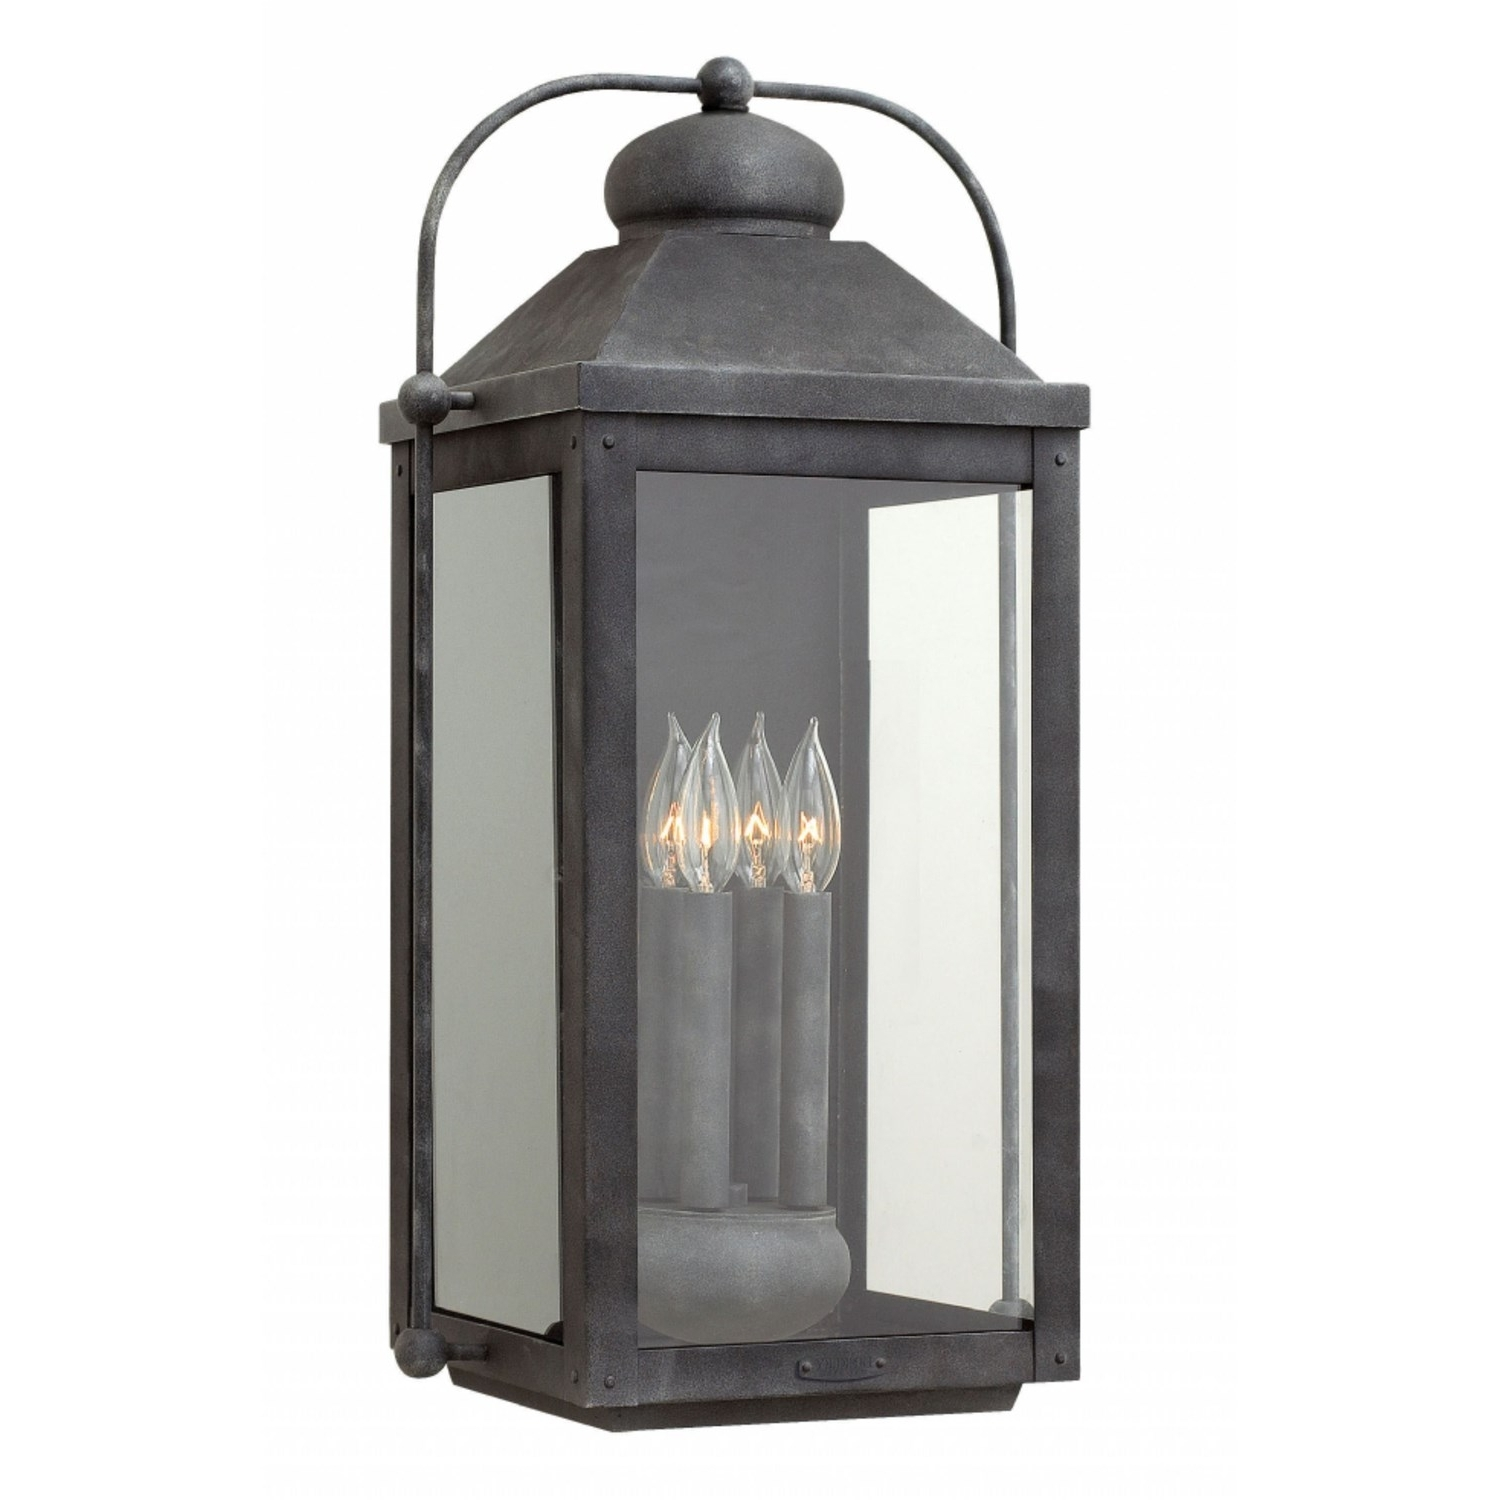 Famous Extra Large Outdoor Wall Lighting Intended For Hinkley 1858dz Anchorage 4 Light Outdoor Extra Large Wall Mount In (View 4 of 20)